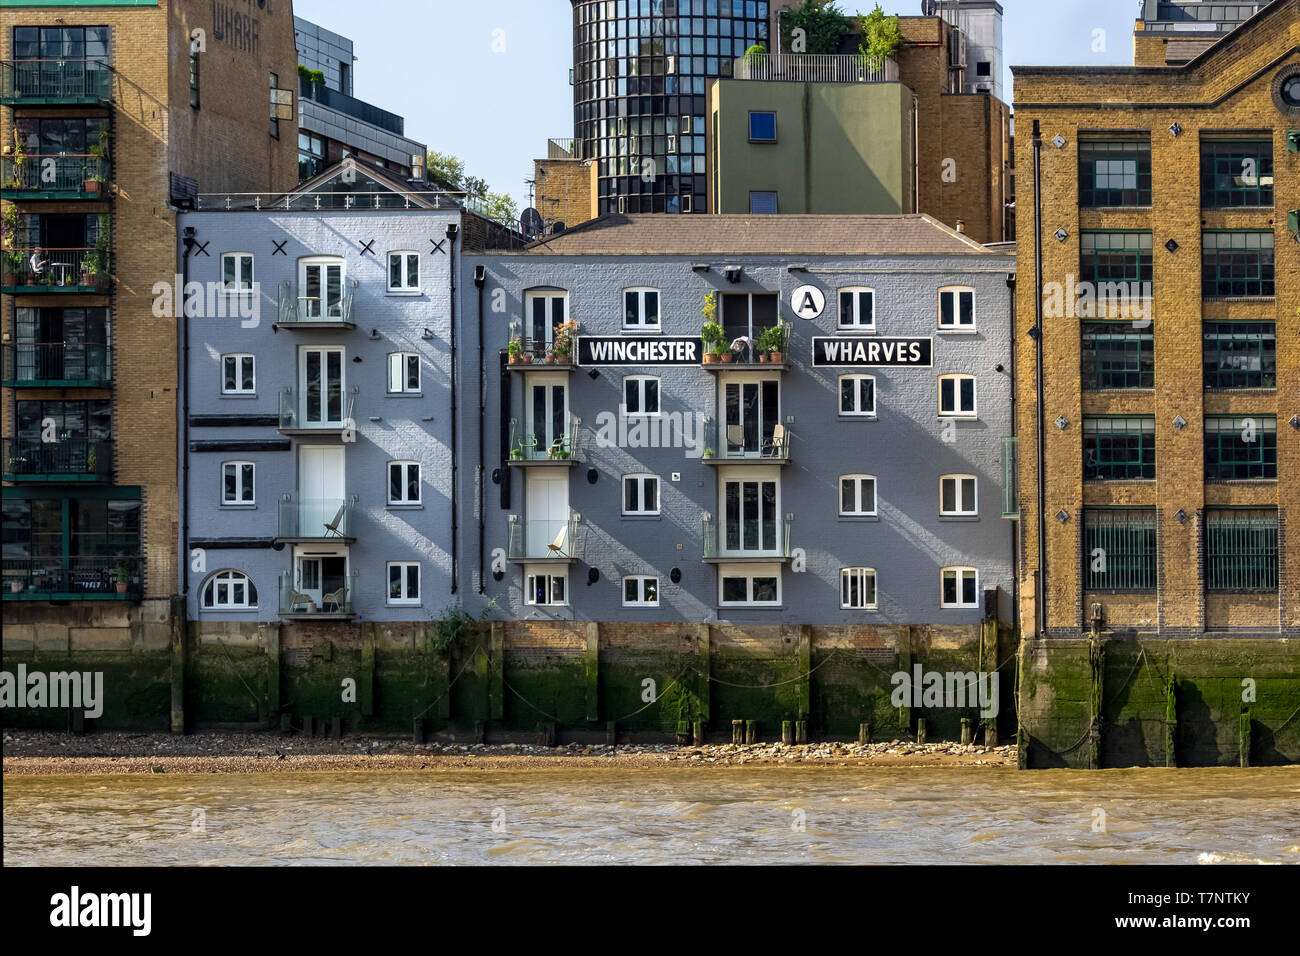 SOUTHBANK, LONDON:  Winchester Wharves Building seen from the River Thames - Stock Image